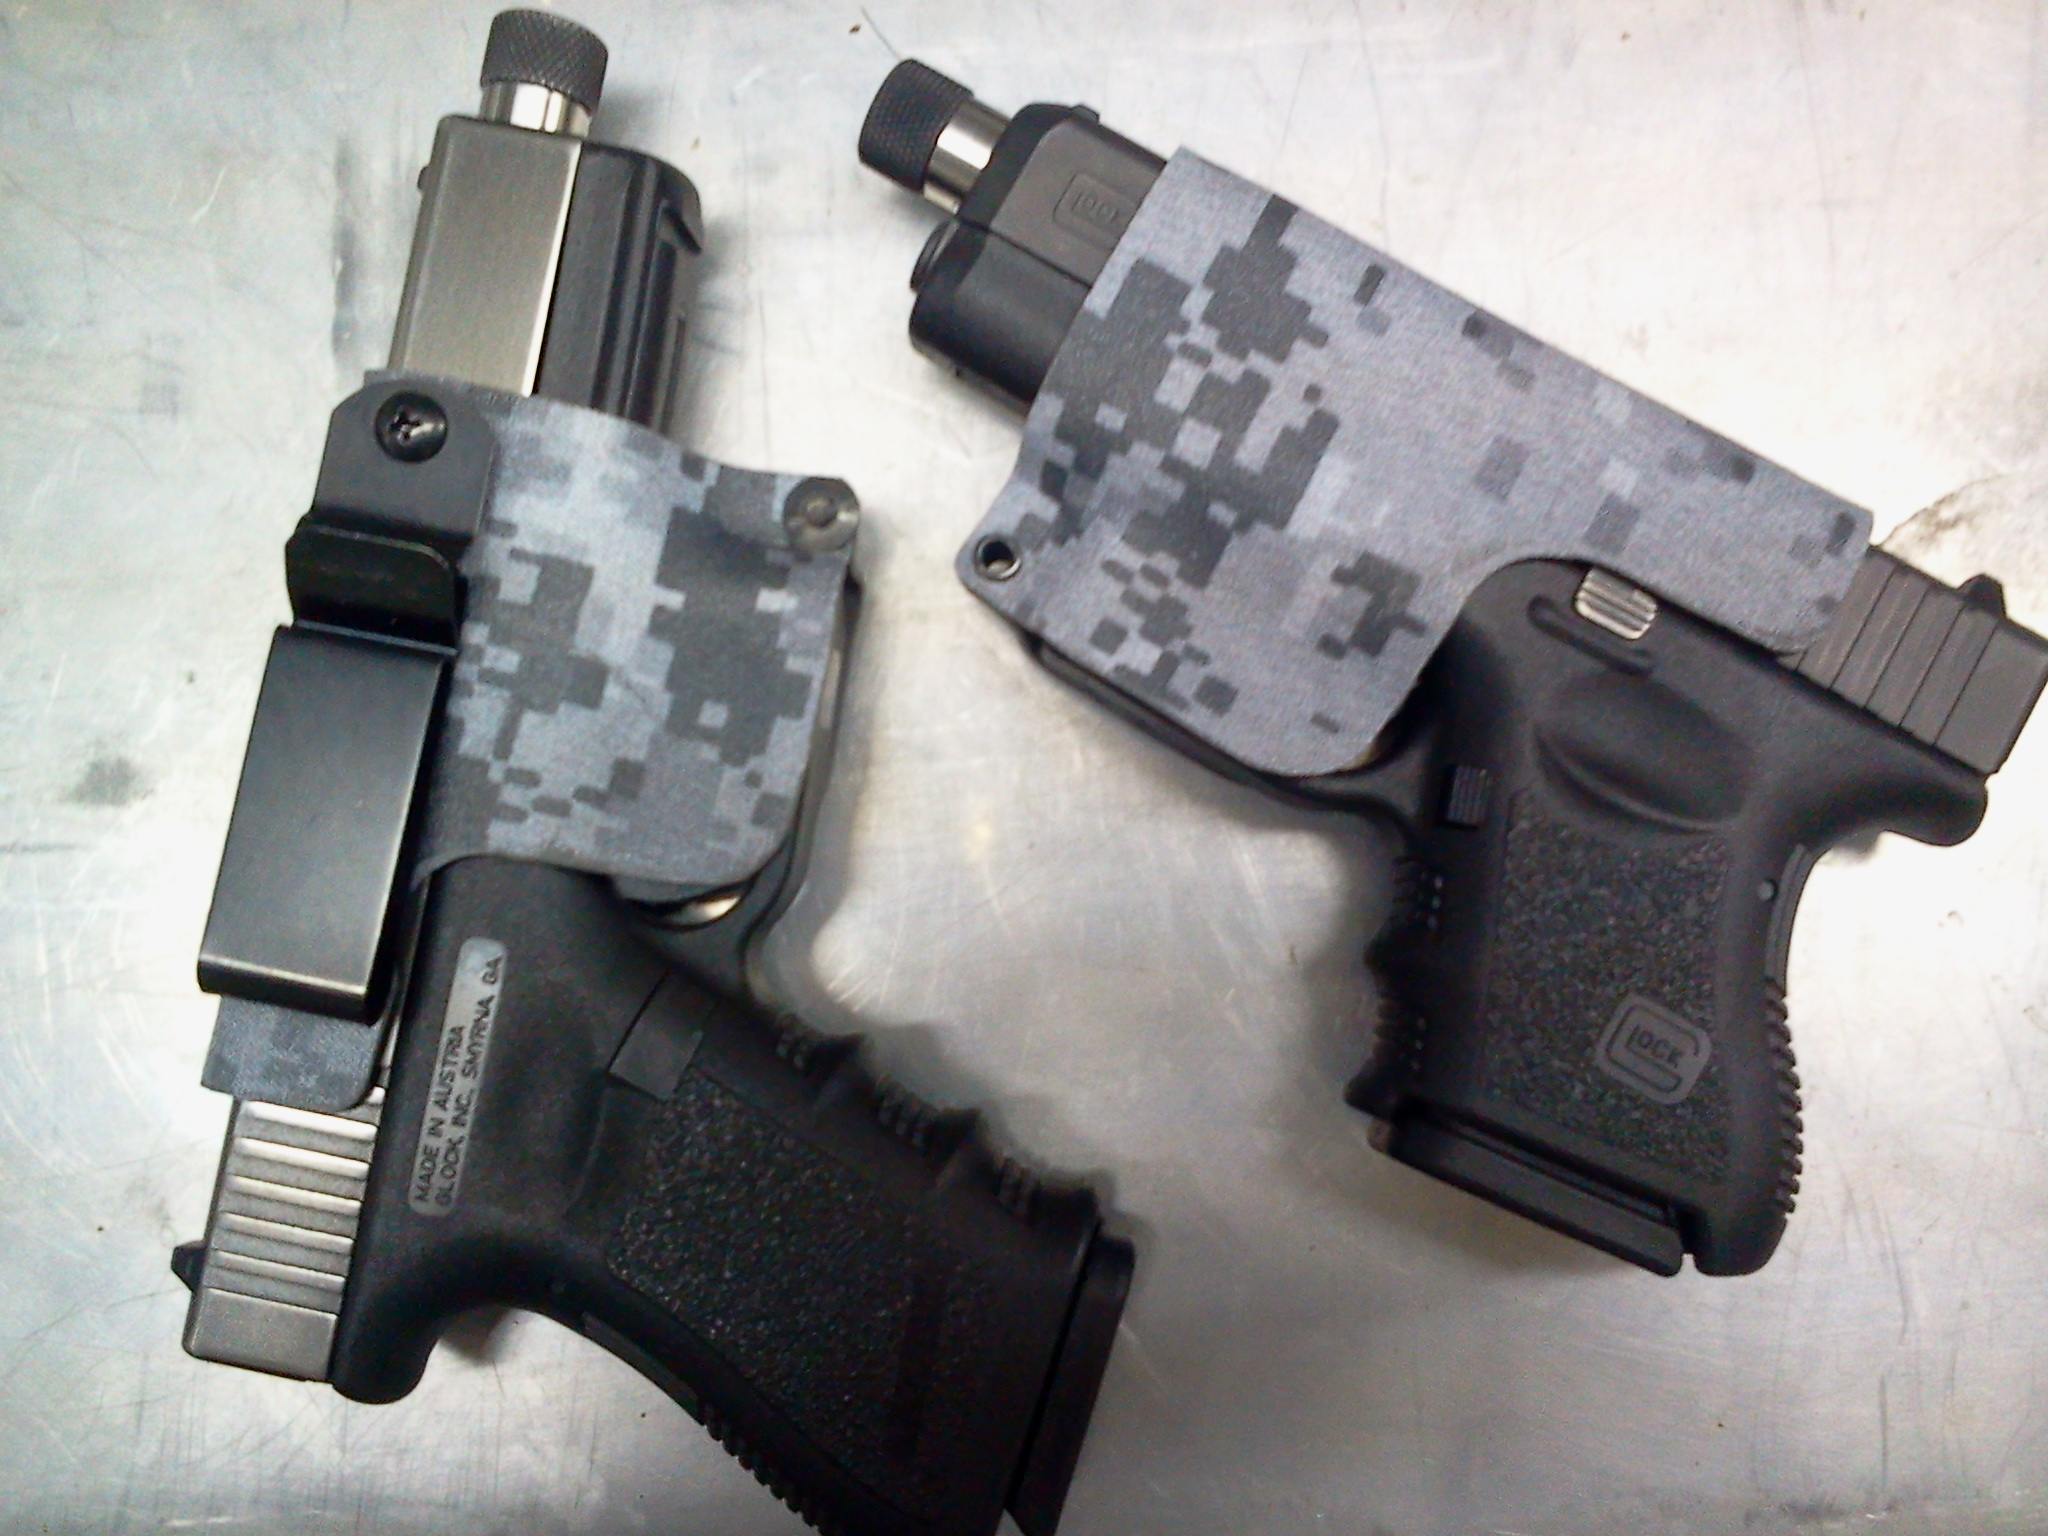 Kydex Holsters For sale Glock 17,18, 19, 22, 23, 26, 27 (20$)